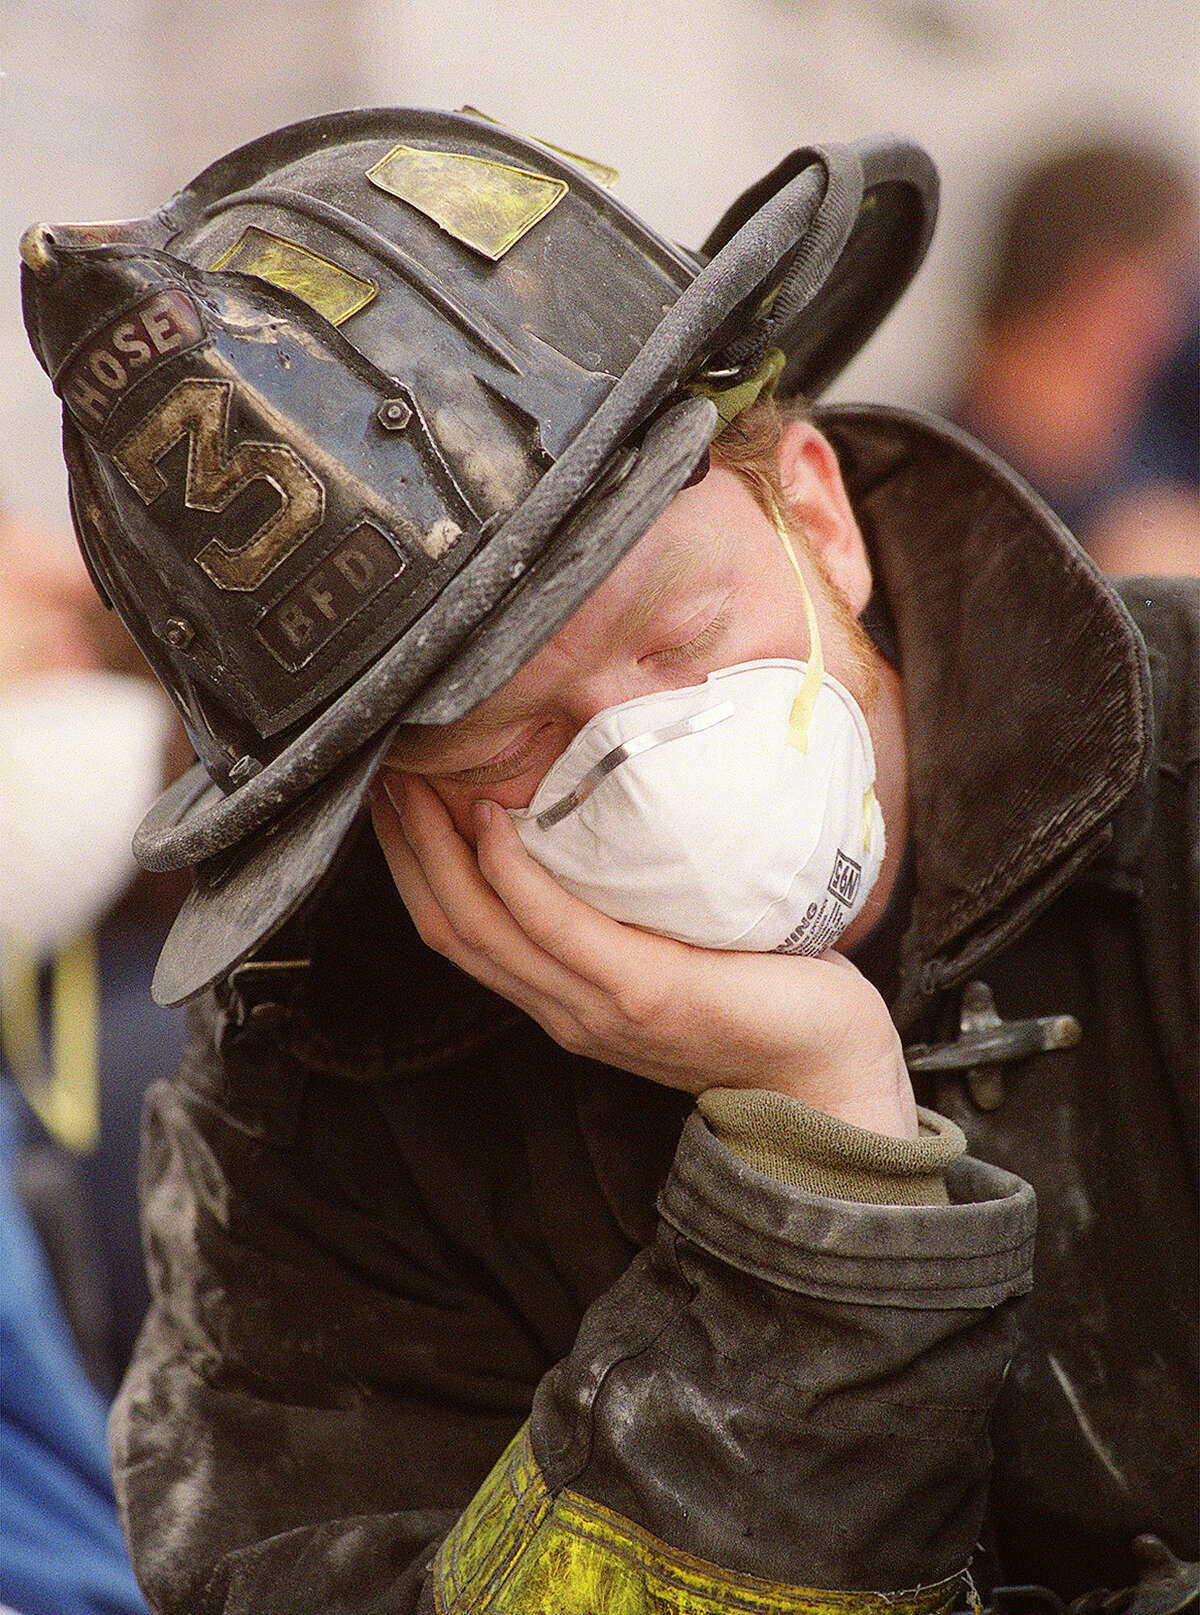 Bill Fennelly, a volunteer firefighter from Baldwin, New York, pauses for a moment at the World Trade Center collapse in New York City, Thursday morning, Sept. 13, 2001. (AP Photo/Stephen Chernin)